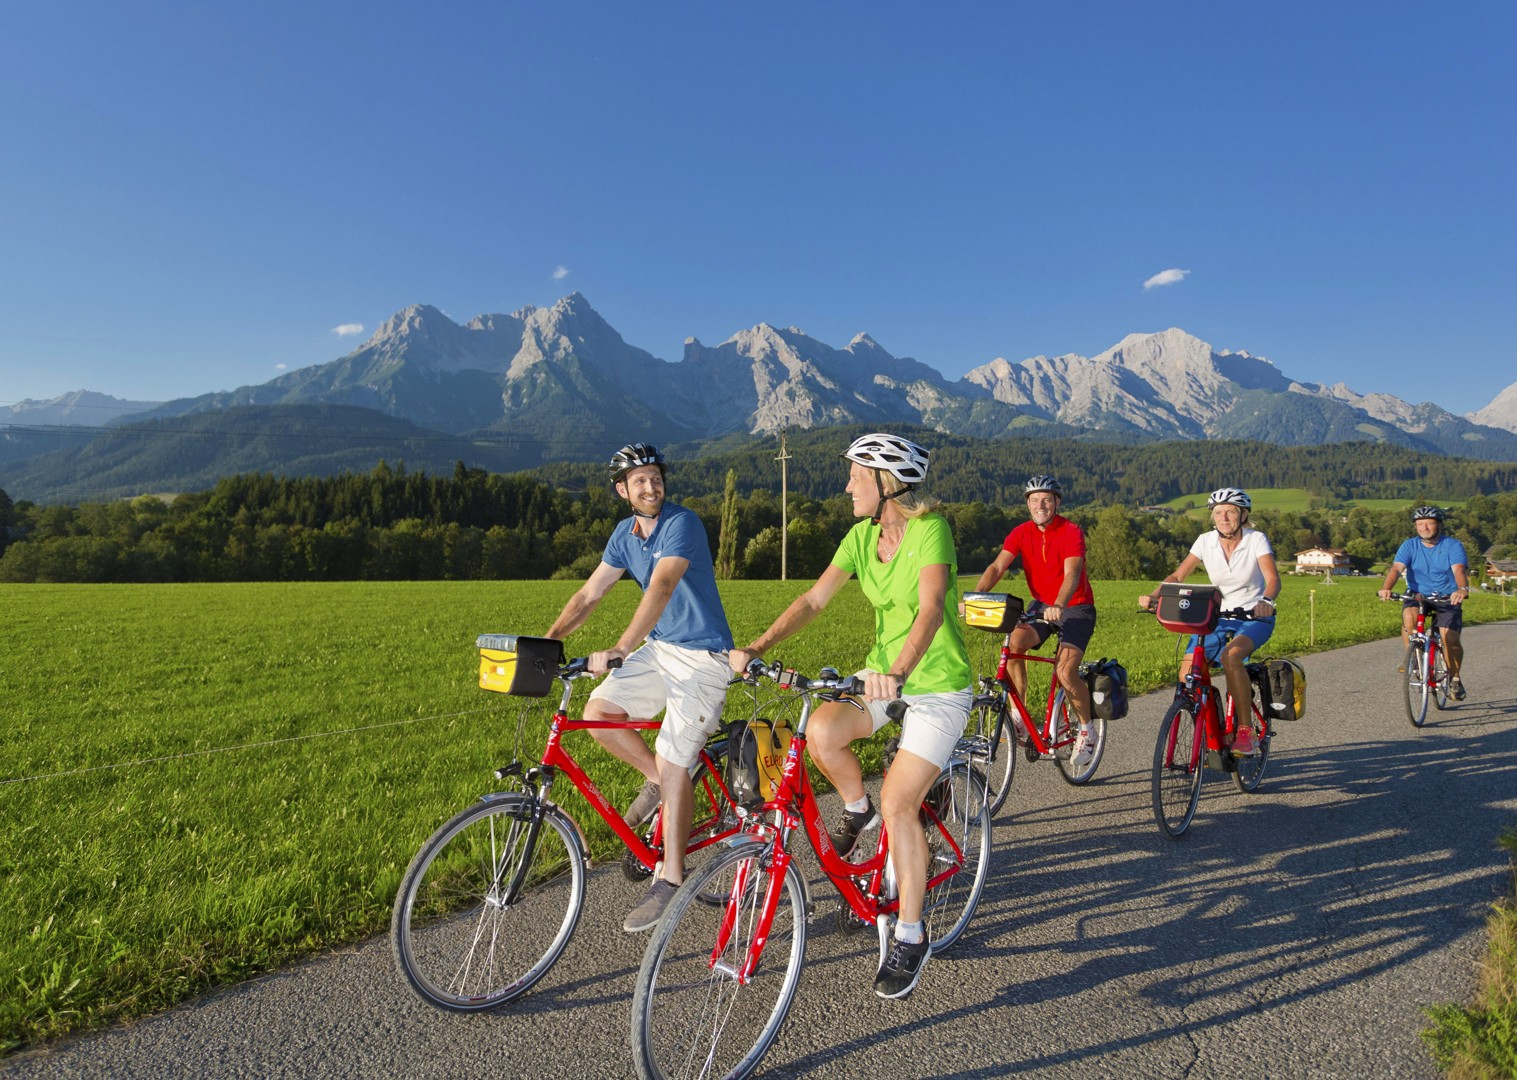 europe-austria--family-cycling-holiday-saddle-skedaddle.jpg - NEW! Austria - Tauern Valleys - Self-Guided Family Cycling Holiday - Family Cycling